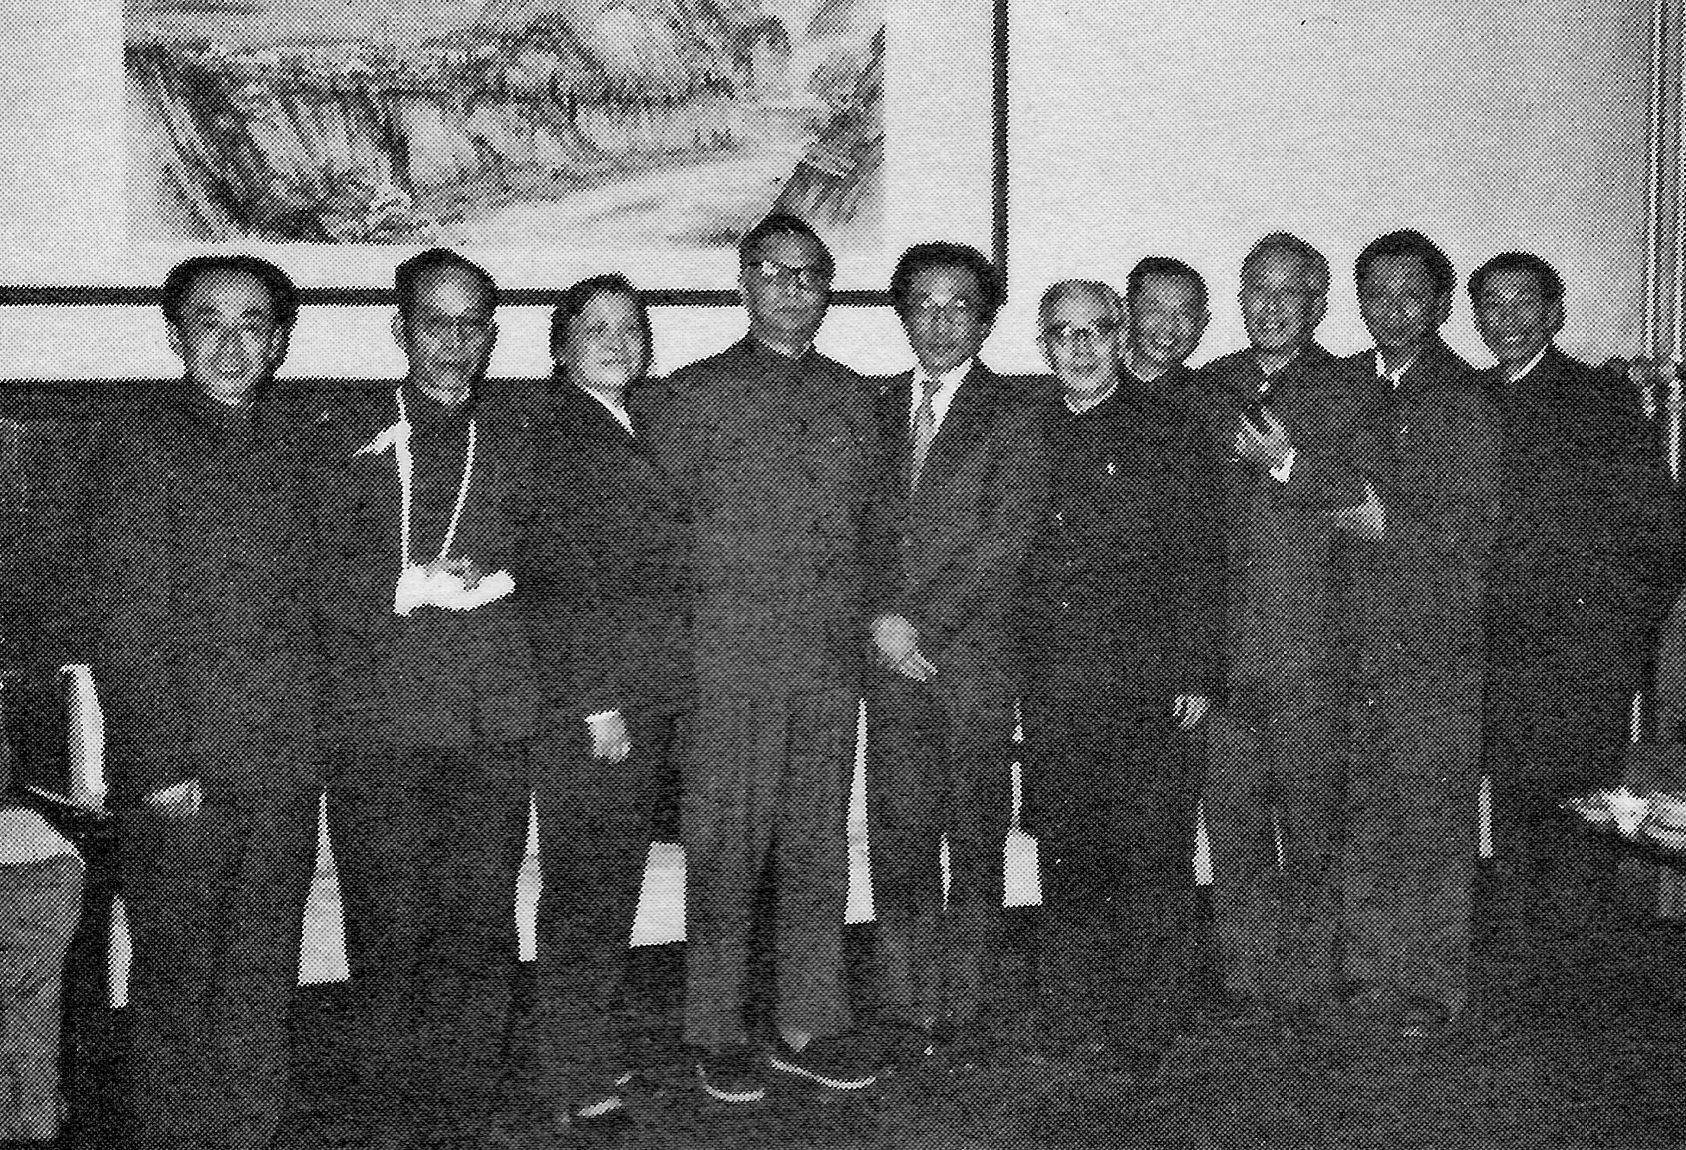 Our trip included nine meetings with the various professional associations under the China Federation of Literary and Arts Circles. Here at a banquet in Beijing are leading members of those organizations: (left to right) Lu Houming, Chinese Photographers Association; Jia Zhi, of the China Society for the Study of Folk Literature and Art; Yang Huilin, CFLAC; Lin Mohan, vice chairman of CFLAC; Chou Wen-chung; Luo Fen, CFLAC; Sun Zhen, Chinese Musicians Association; Hua Junwu, Chinese Artists Association; Meng Guangjun, Chinese Film Association; and You Huihai, Chinese Dancers Association.